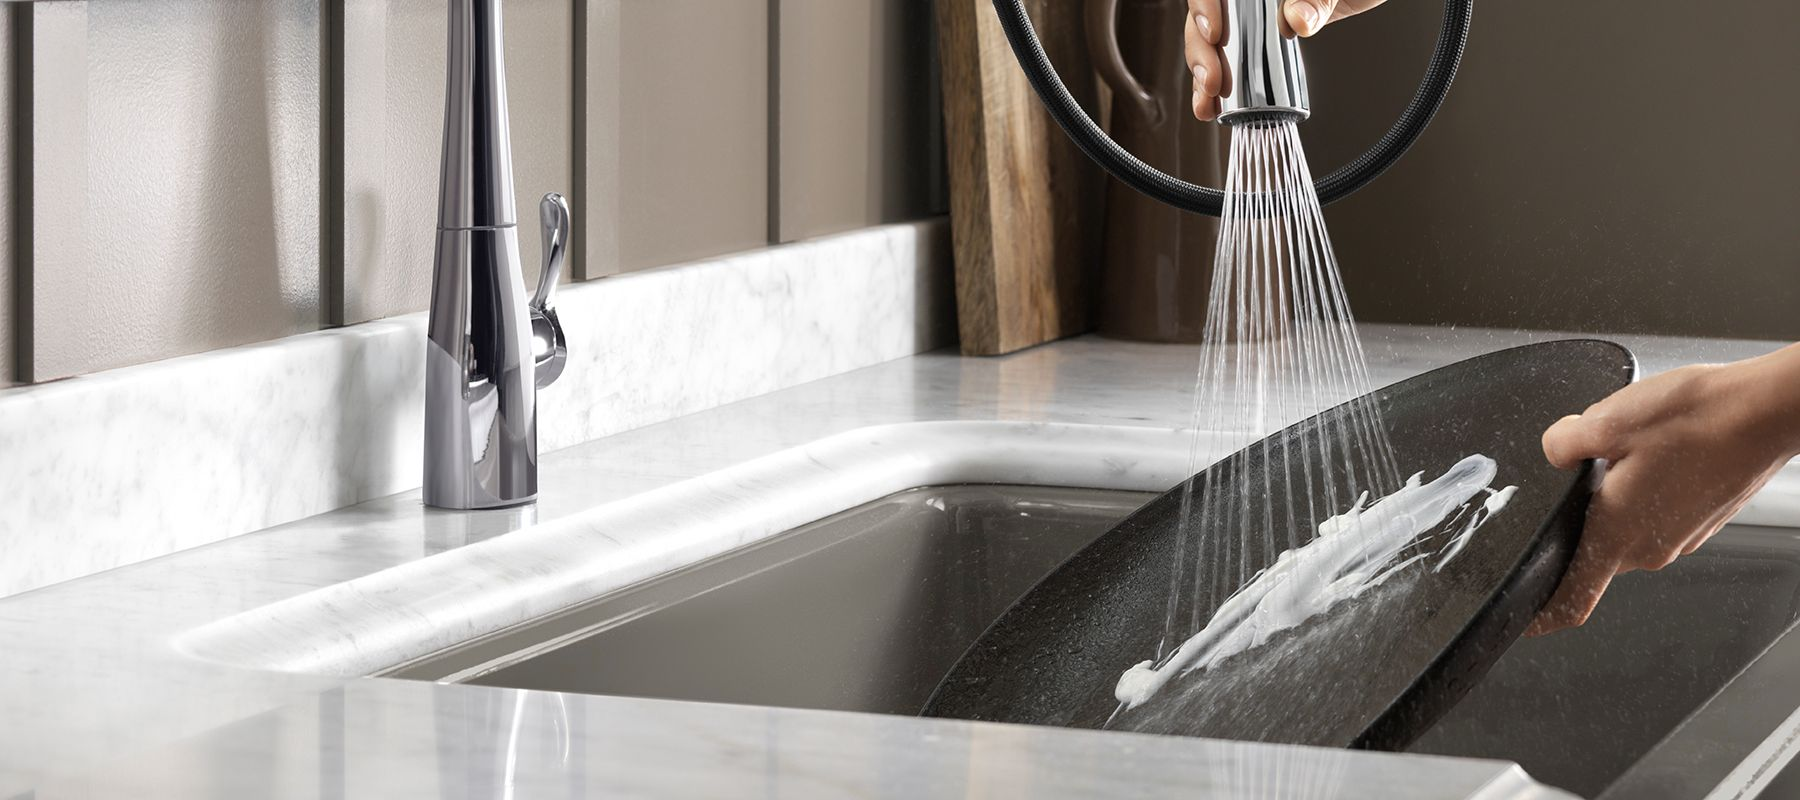 Pull-down Shop all Kitchen Faucets | Kohler.com | KOHLER